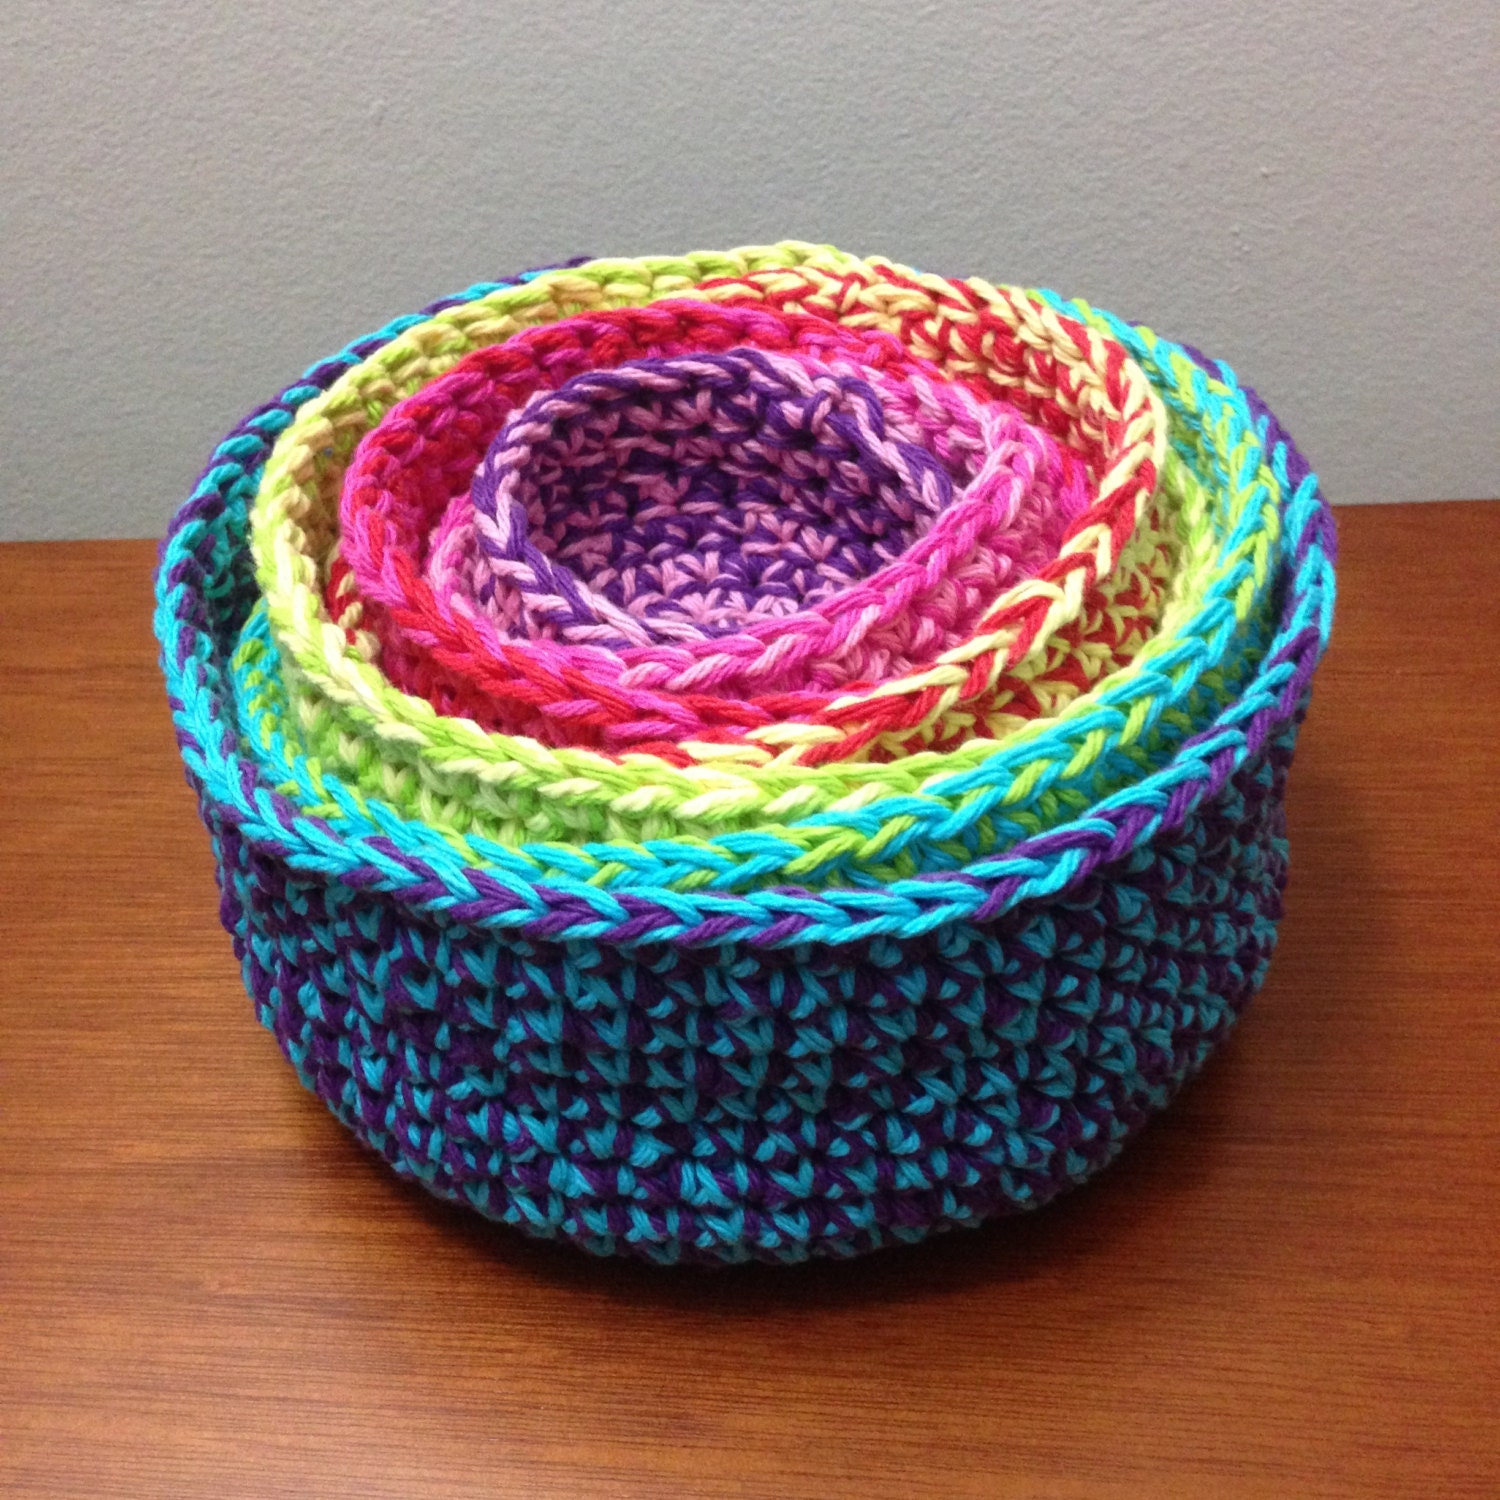 Free Patterns Crochet Baskets Bowls : Crochet Nesting Bowls Pattern / Tutorial: Set of 7 Colorful